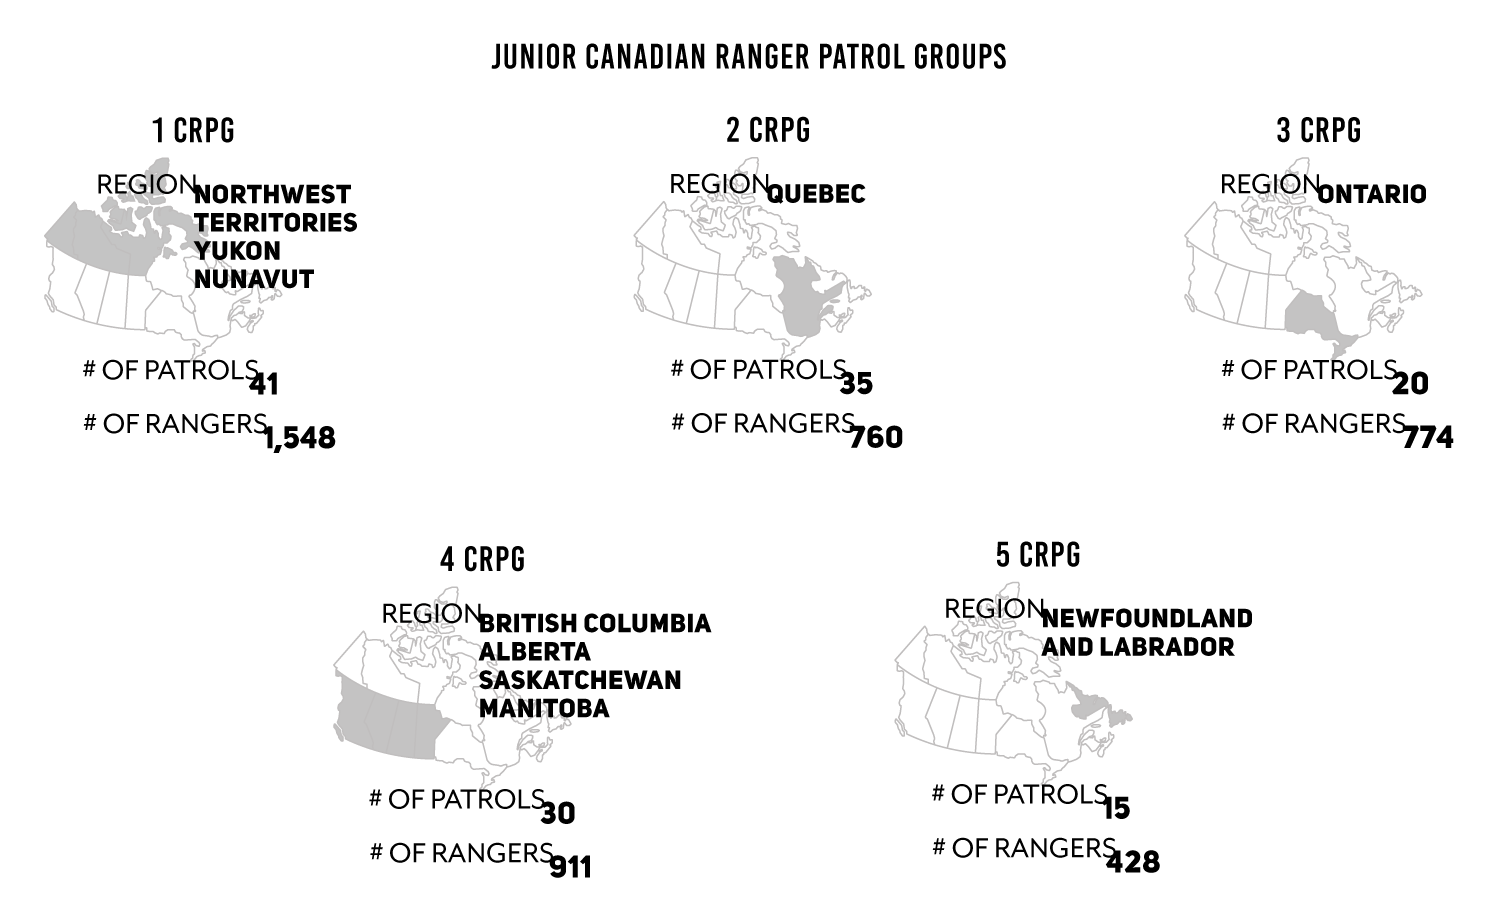 Junior Canadian Ranger region infographic